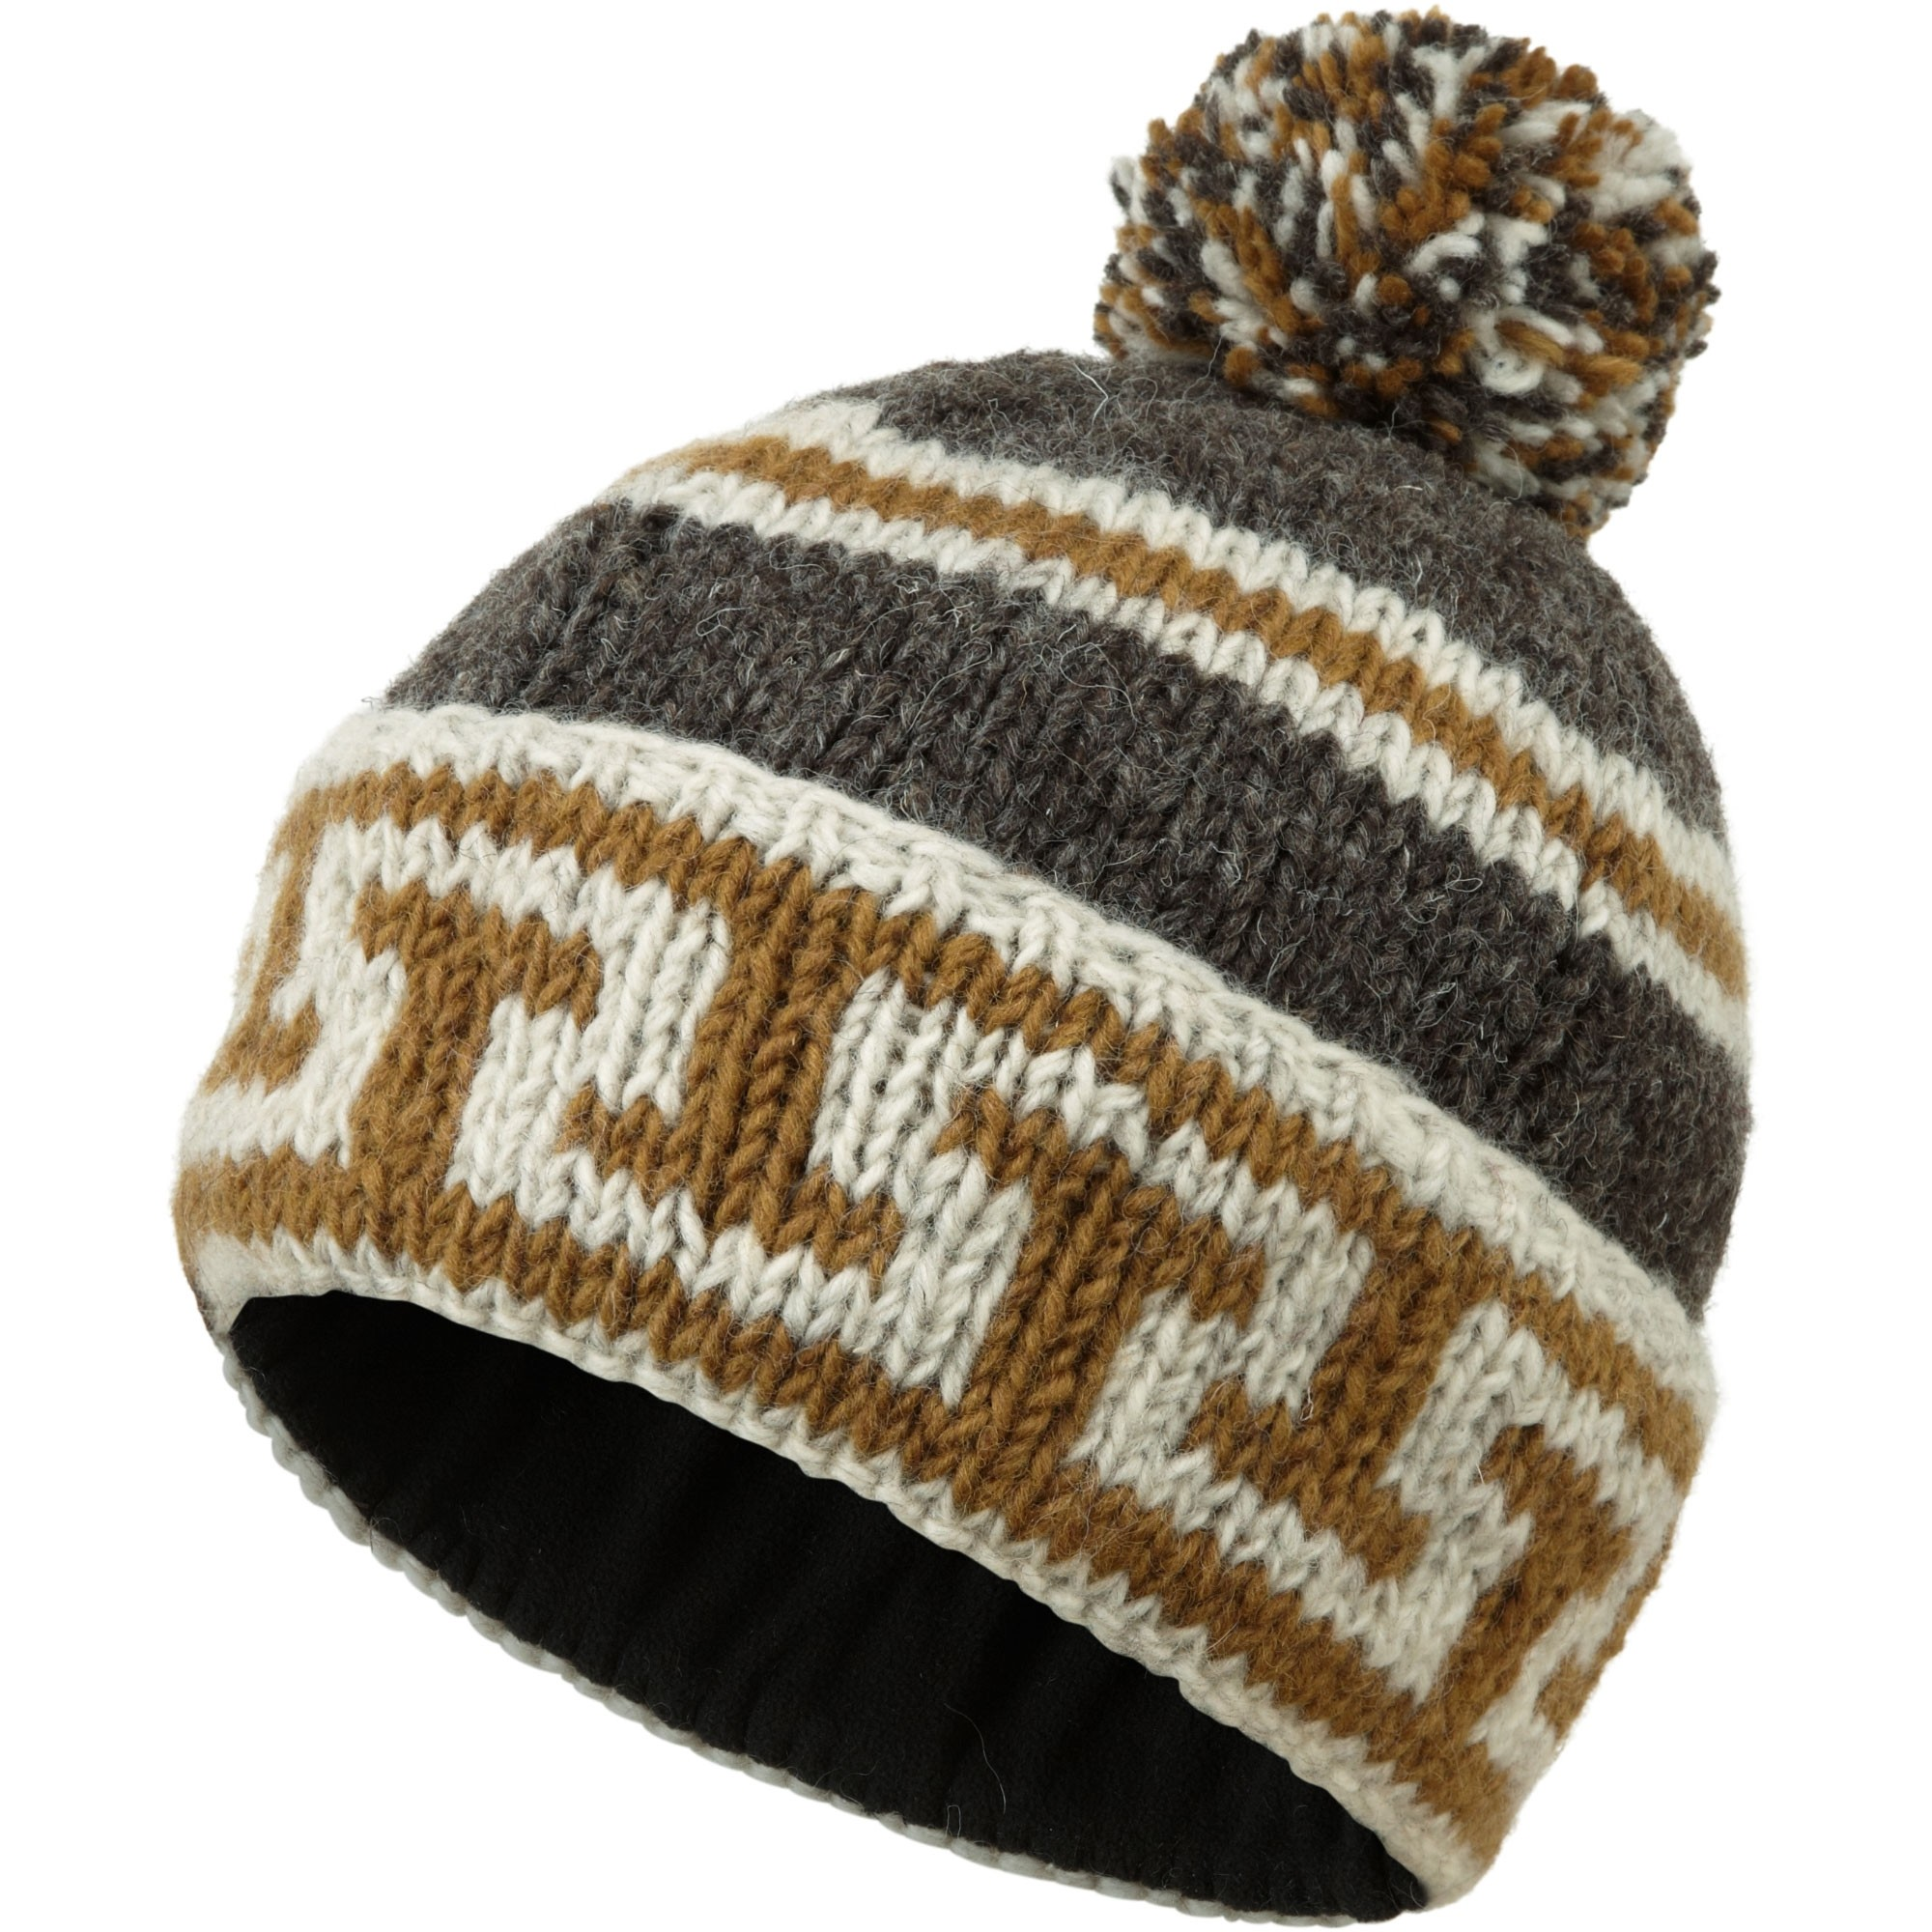 Sherpa-Adventure-Gear-Palden-Hat-Maato-Brown-W17